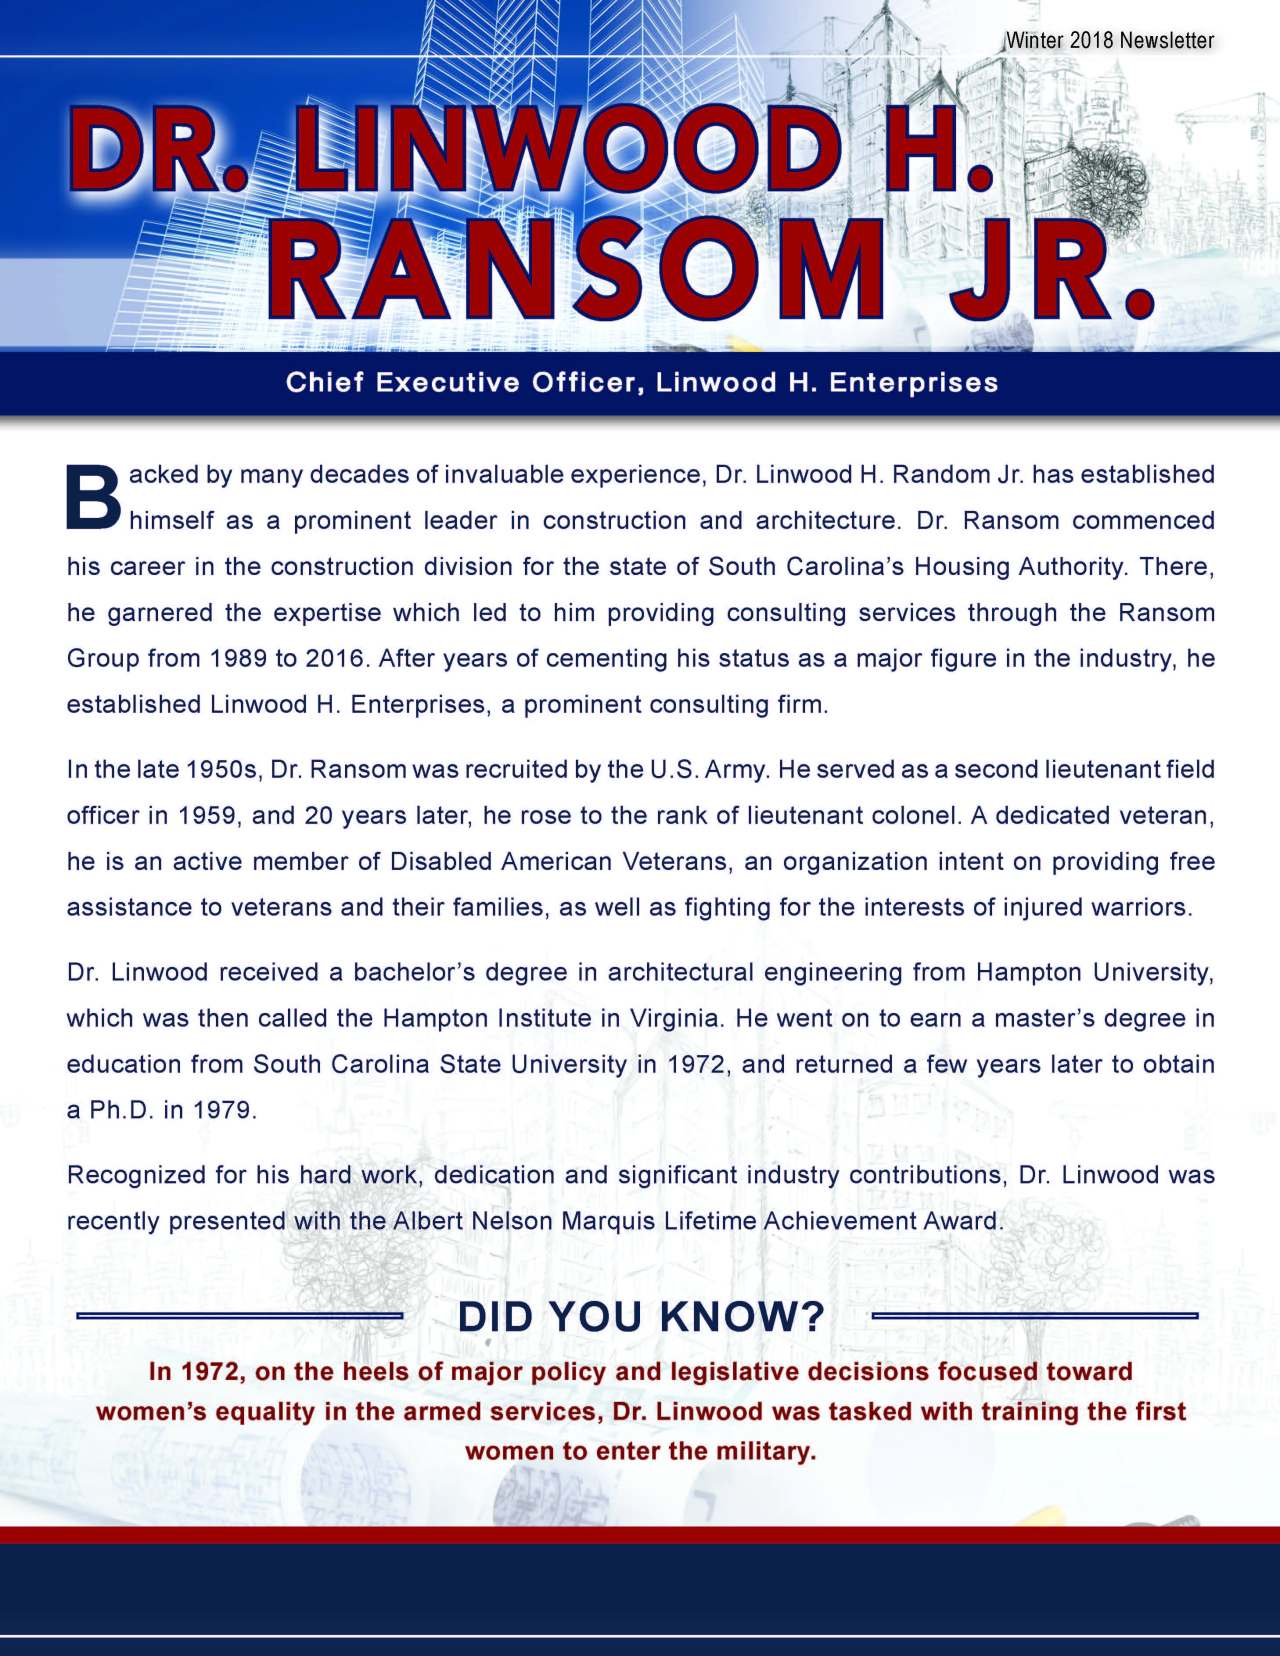 Ransom, Linwood 3688900_4003688900 Newsletter.jpg